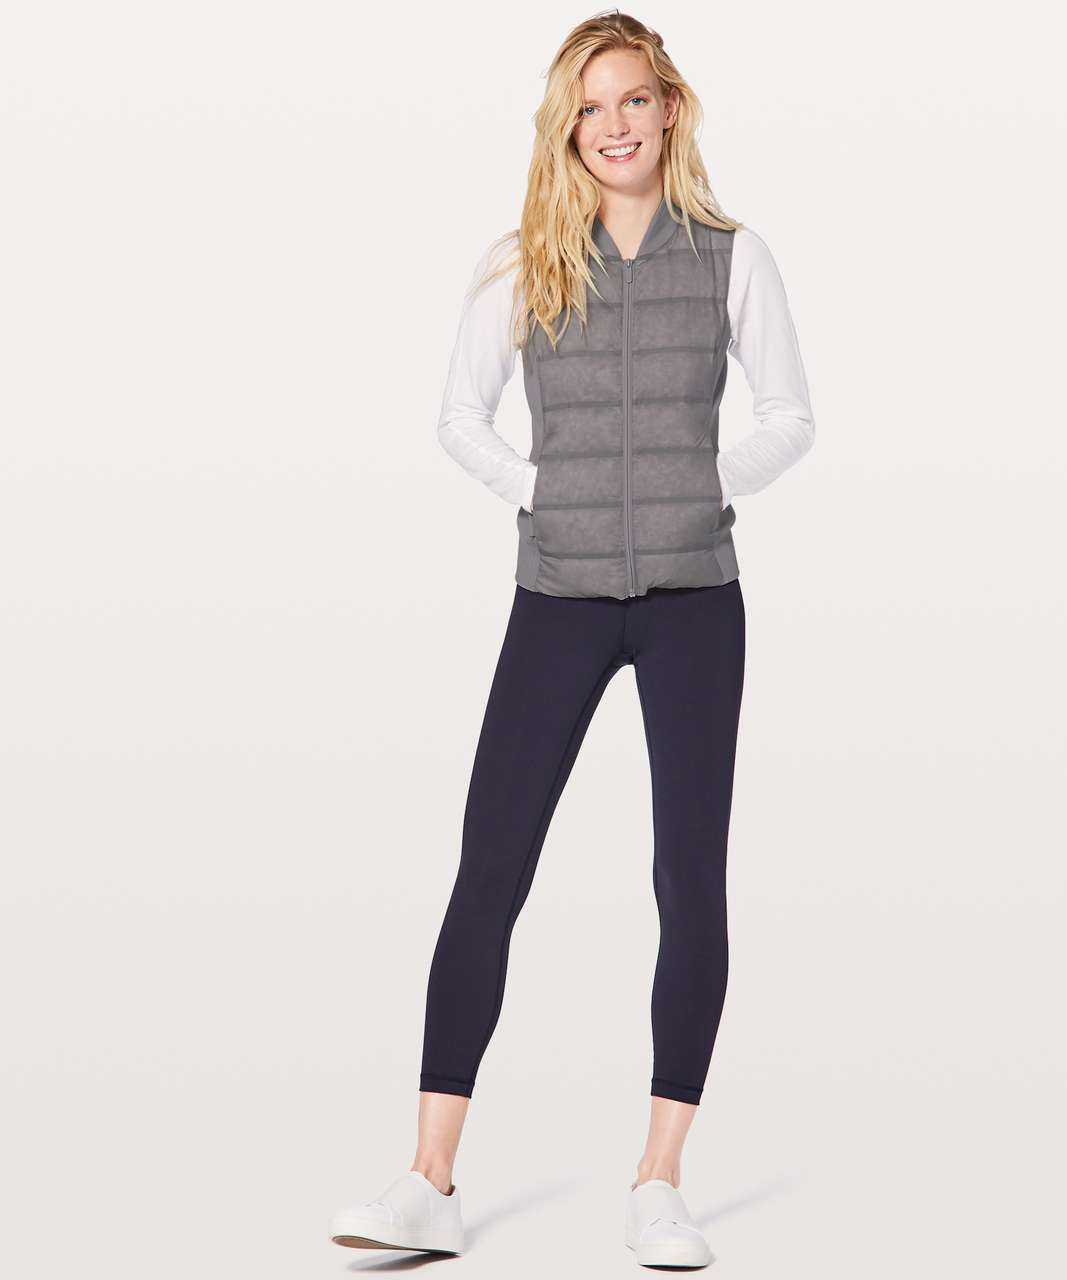 Lululemon Down & Around Vest - Light Cast